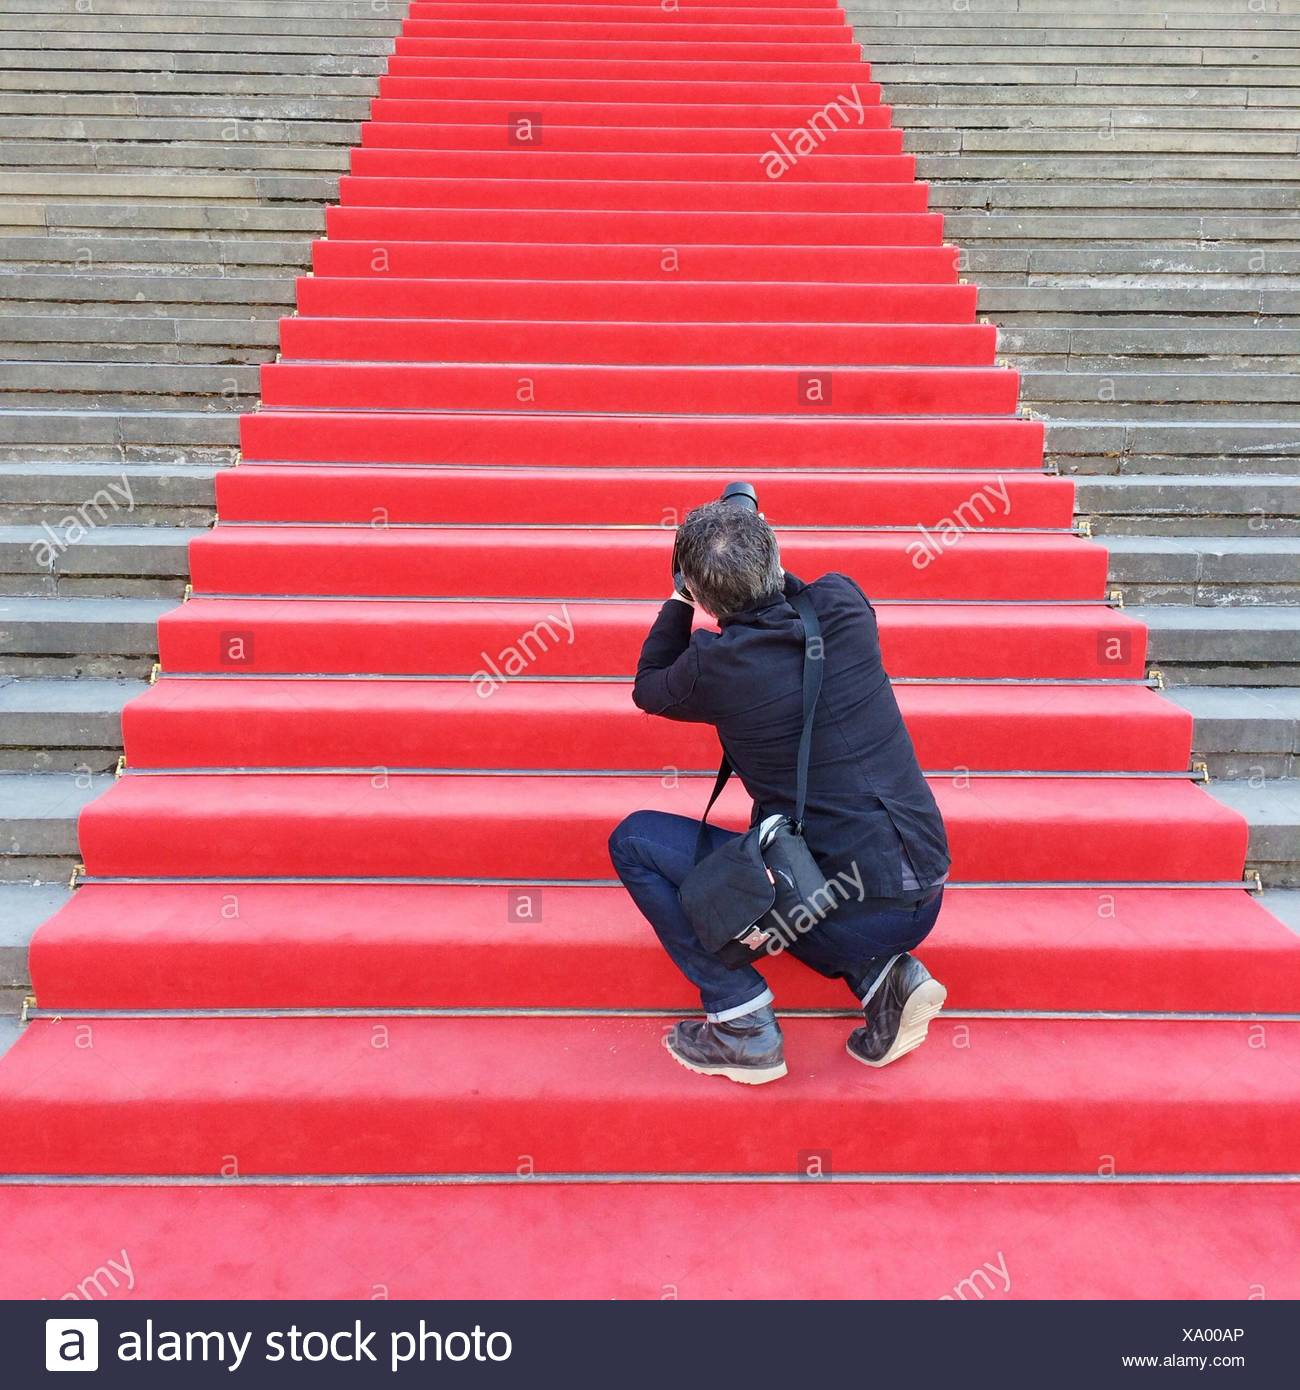 Rear View Of A Male Paparazzi On Red Carpeted Stairs Stock Photo